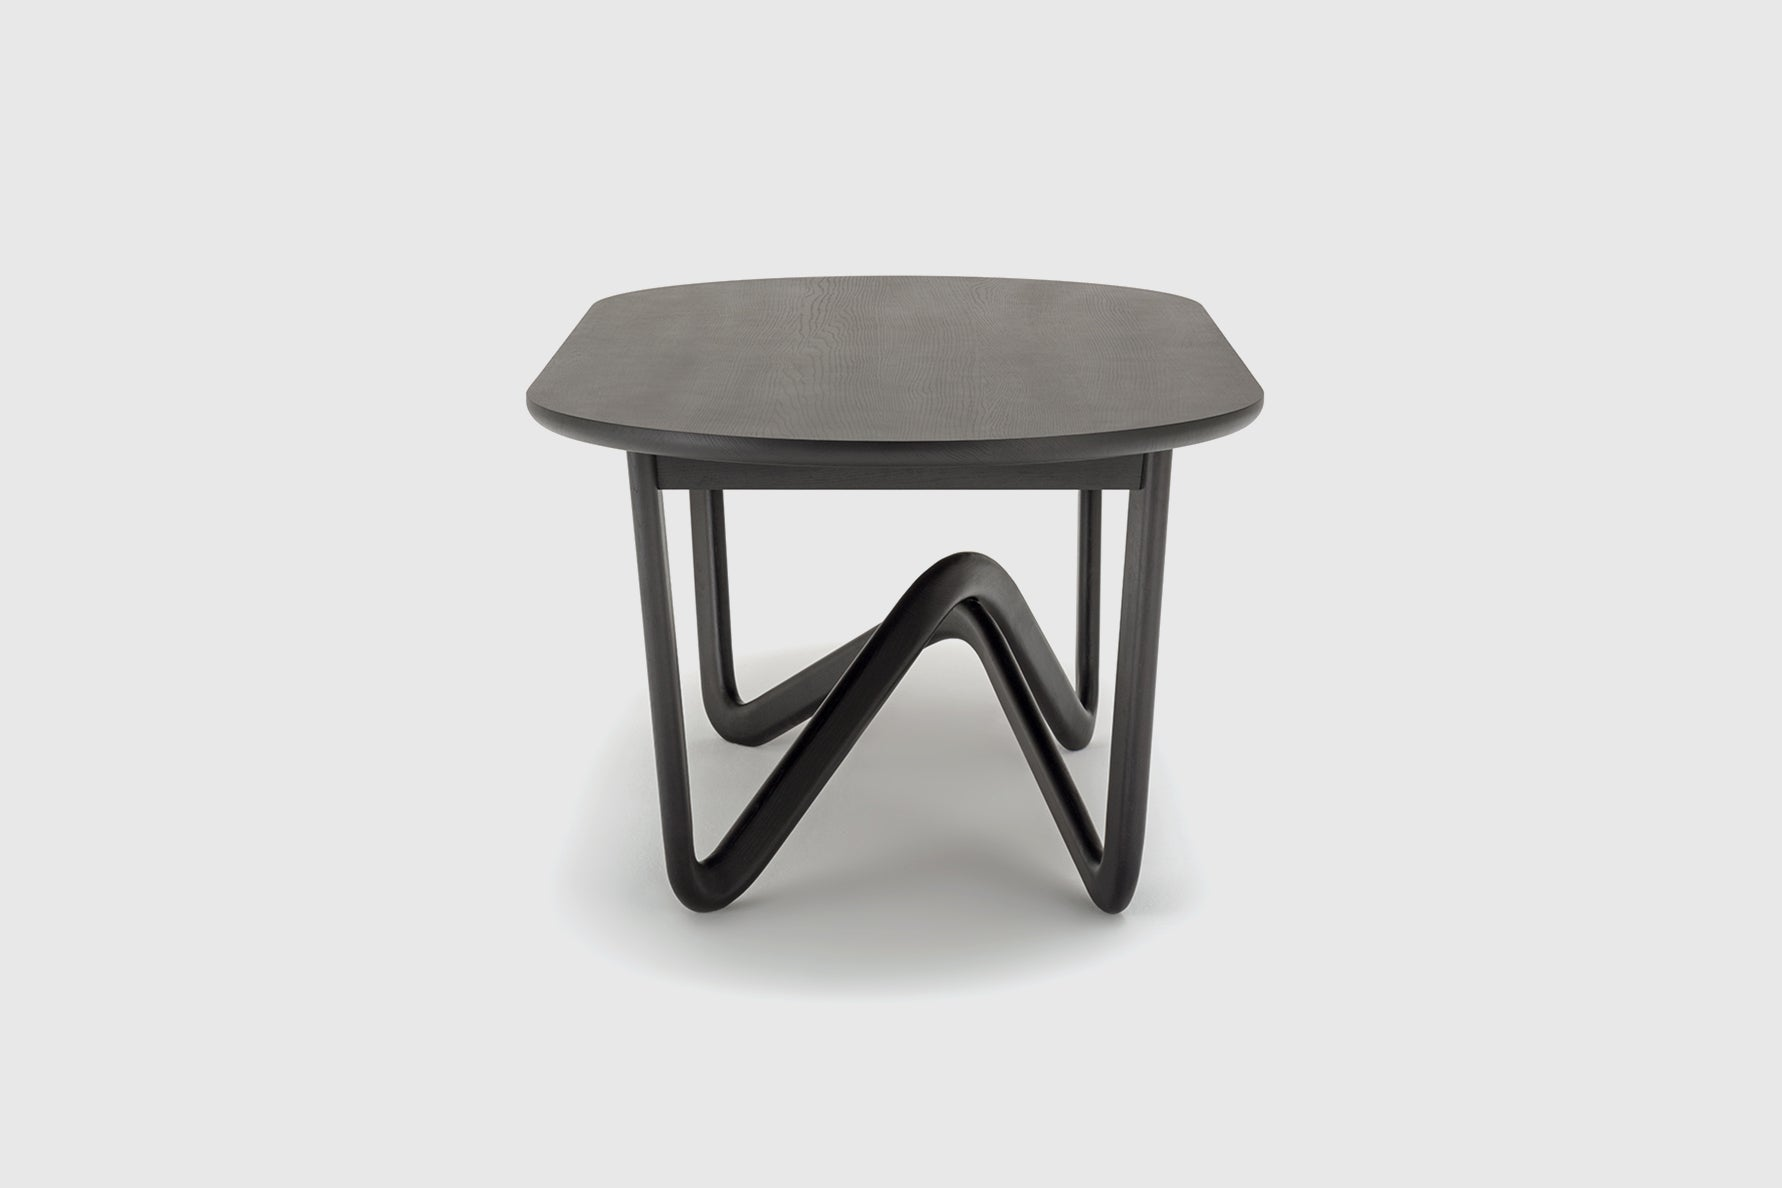 Bodo Sperlein Rolf Benz Black Oak Table 988